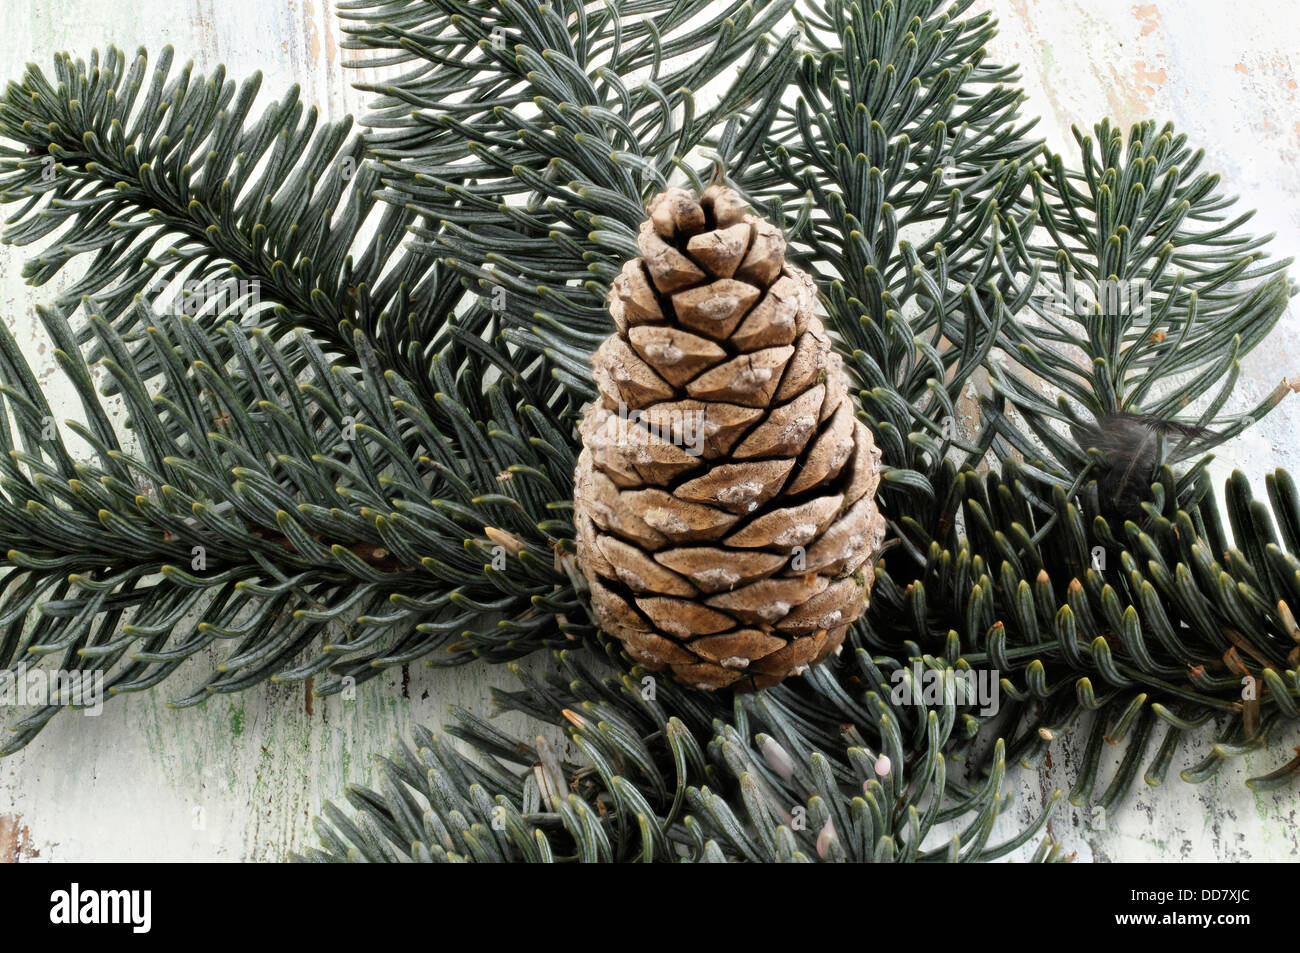 Pine branch and pine cones - Stock Image